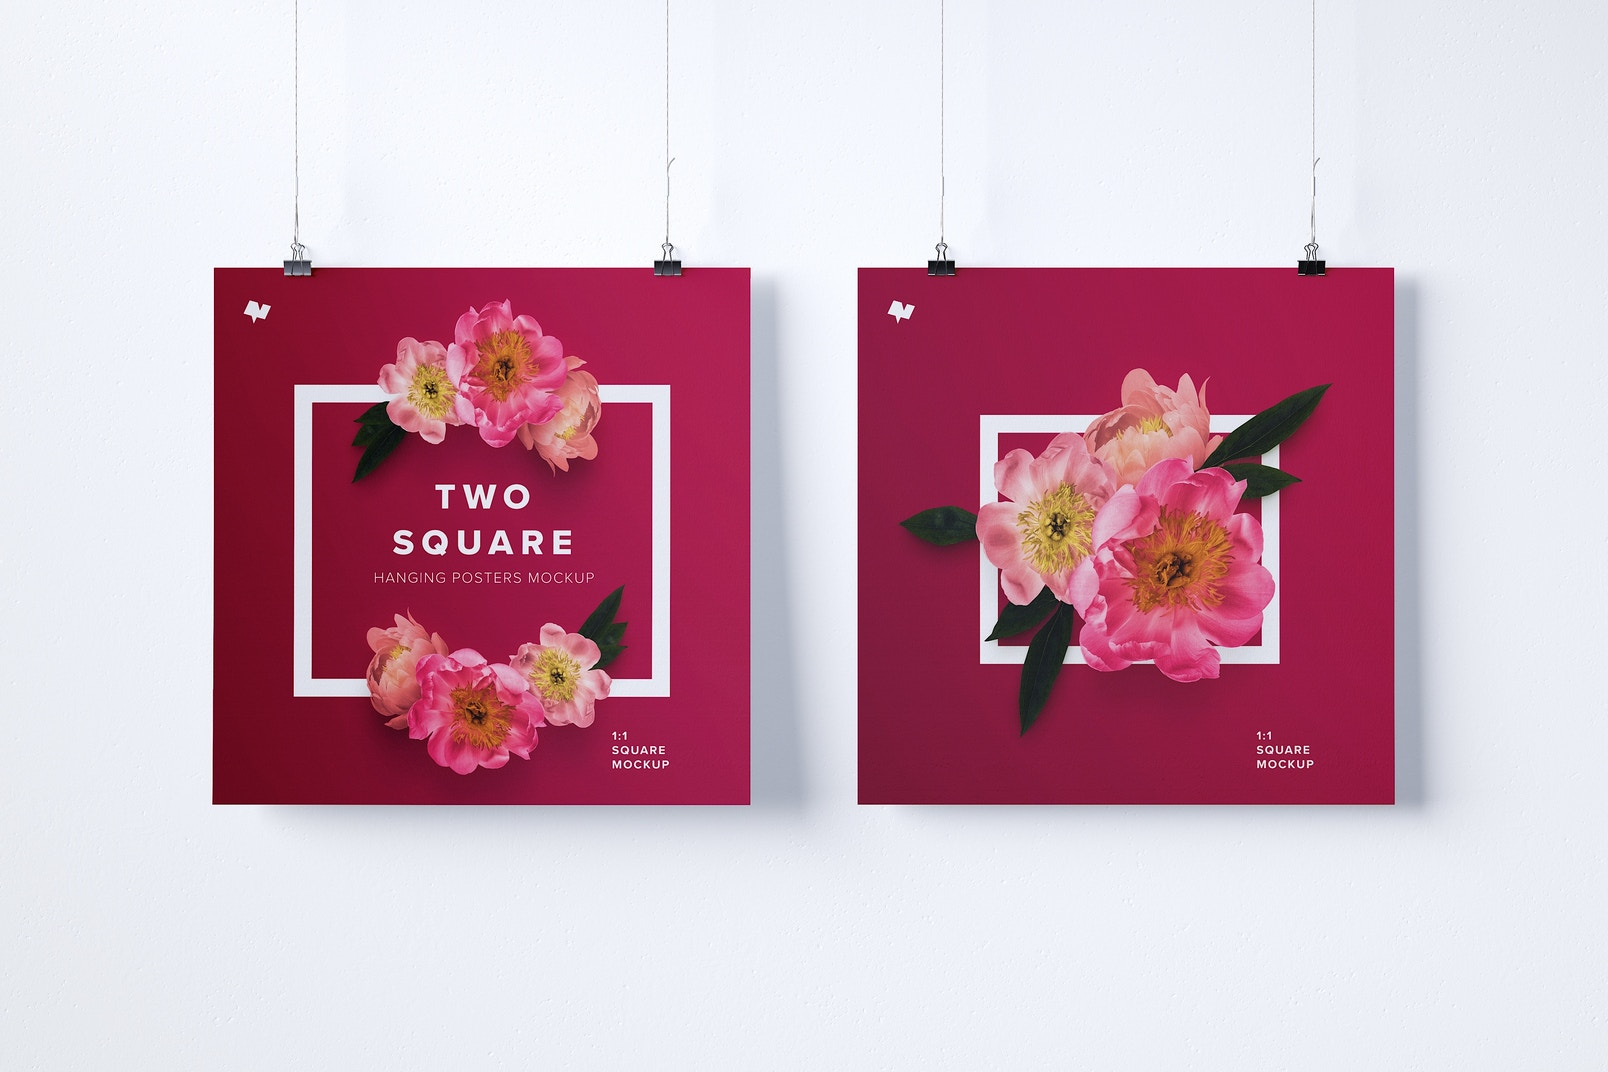 Two 1:1 Square Hanging Posters Mockup